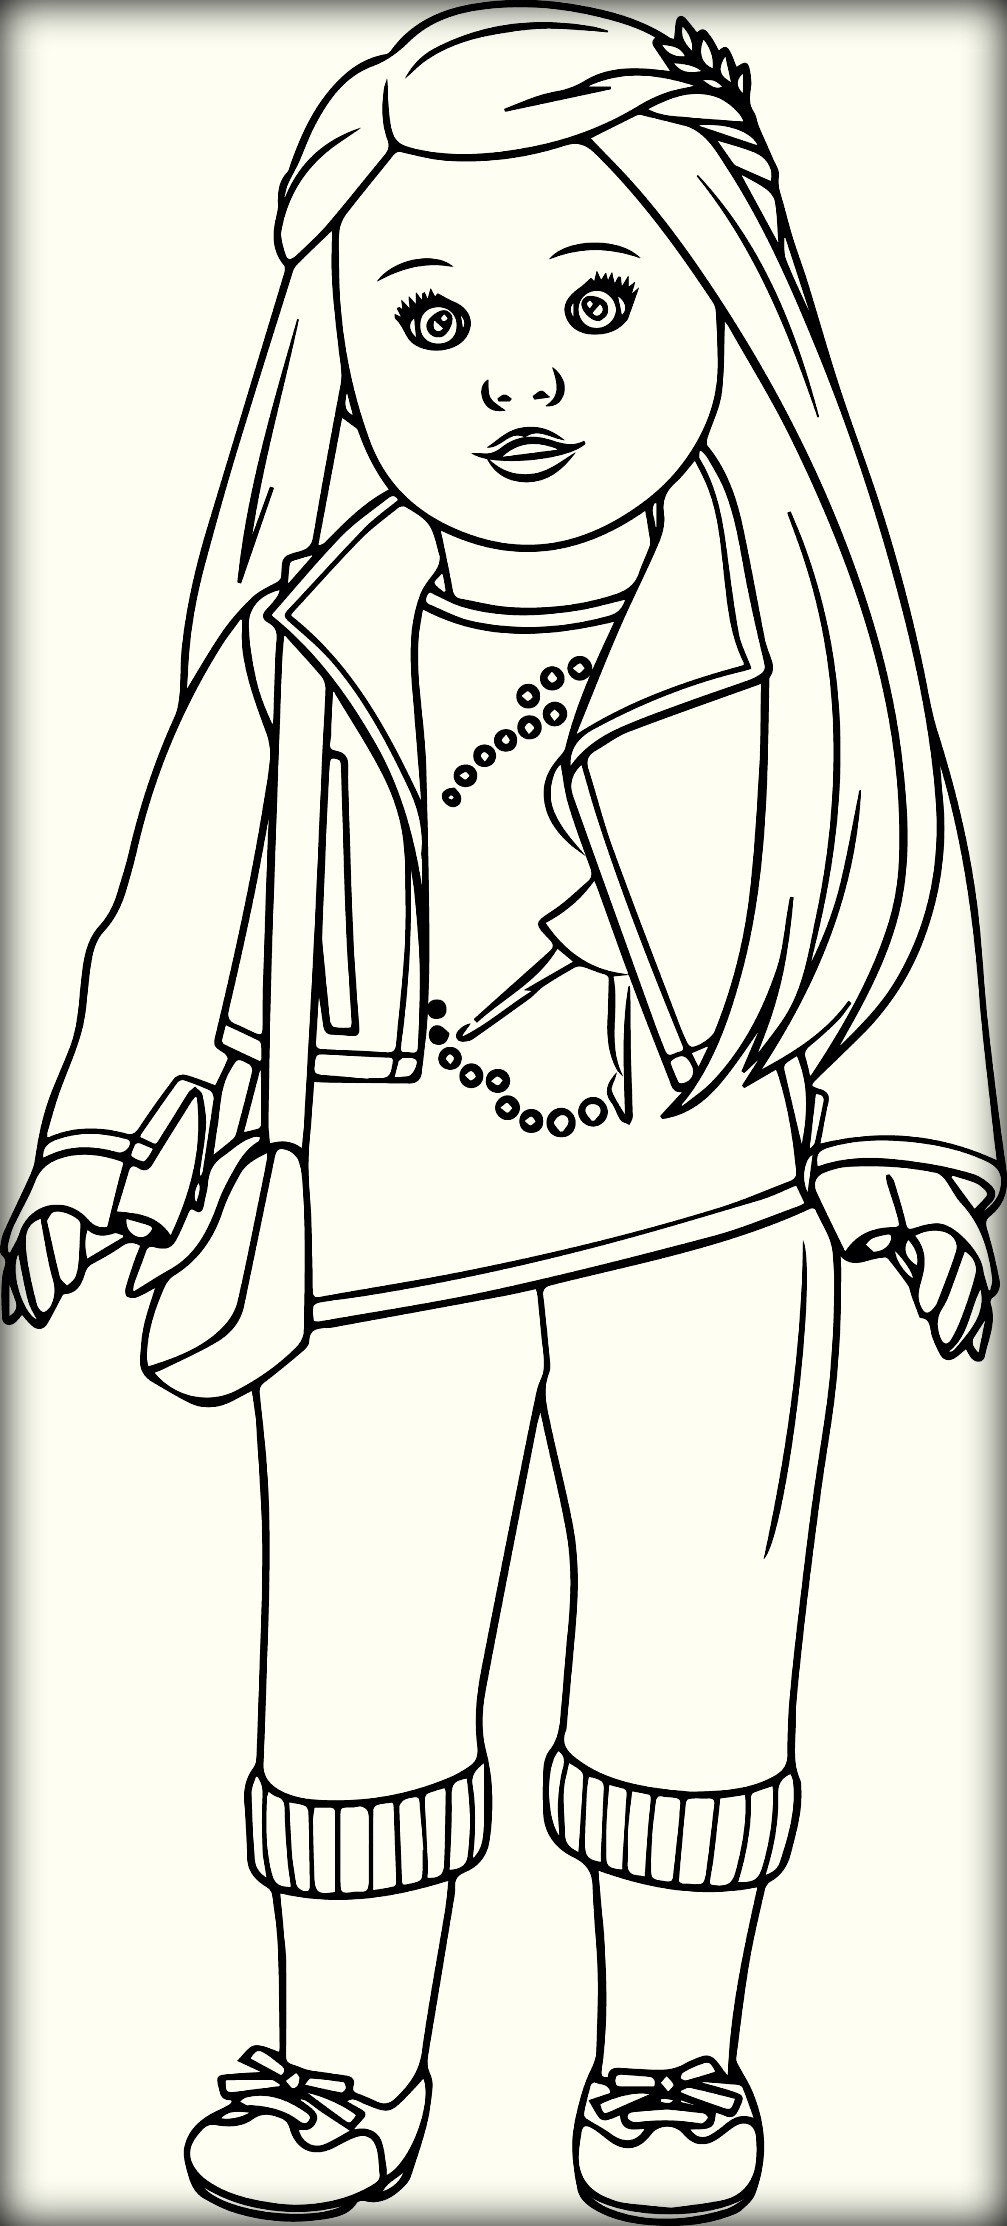 American Girl Doll Coloring Pages  American Girl Free Colouring Pages